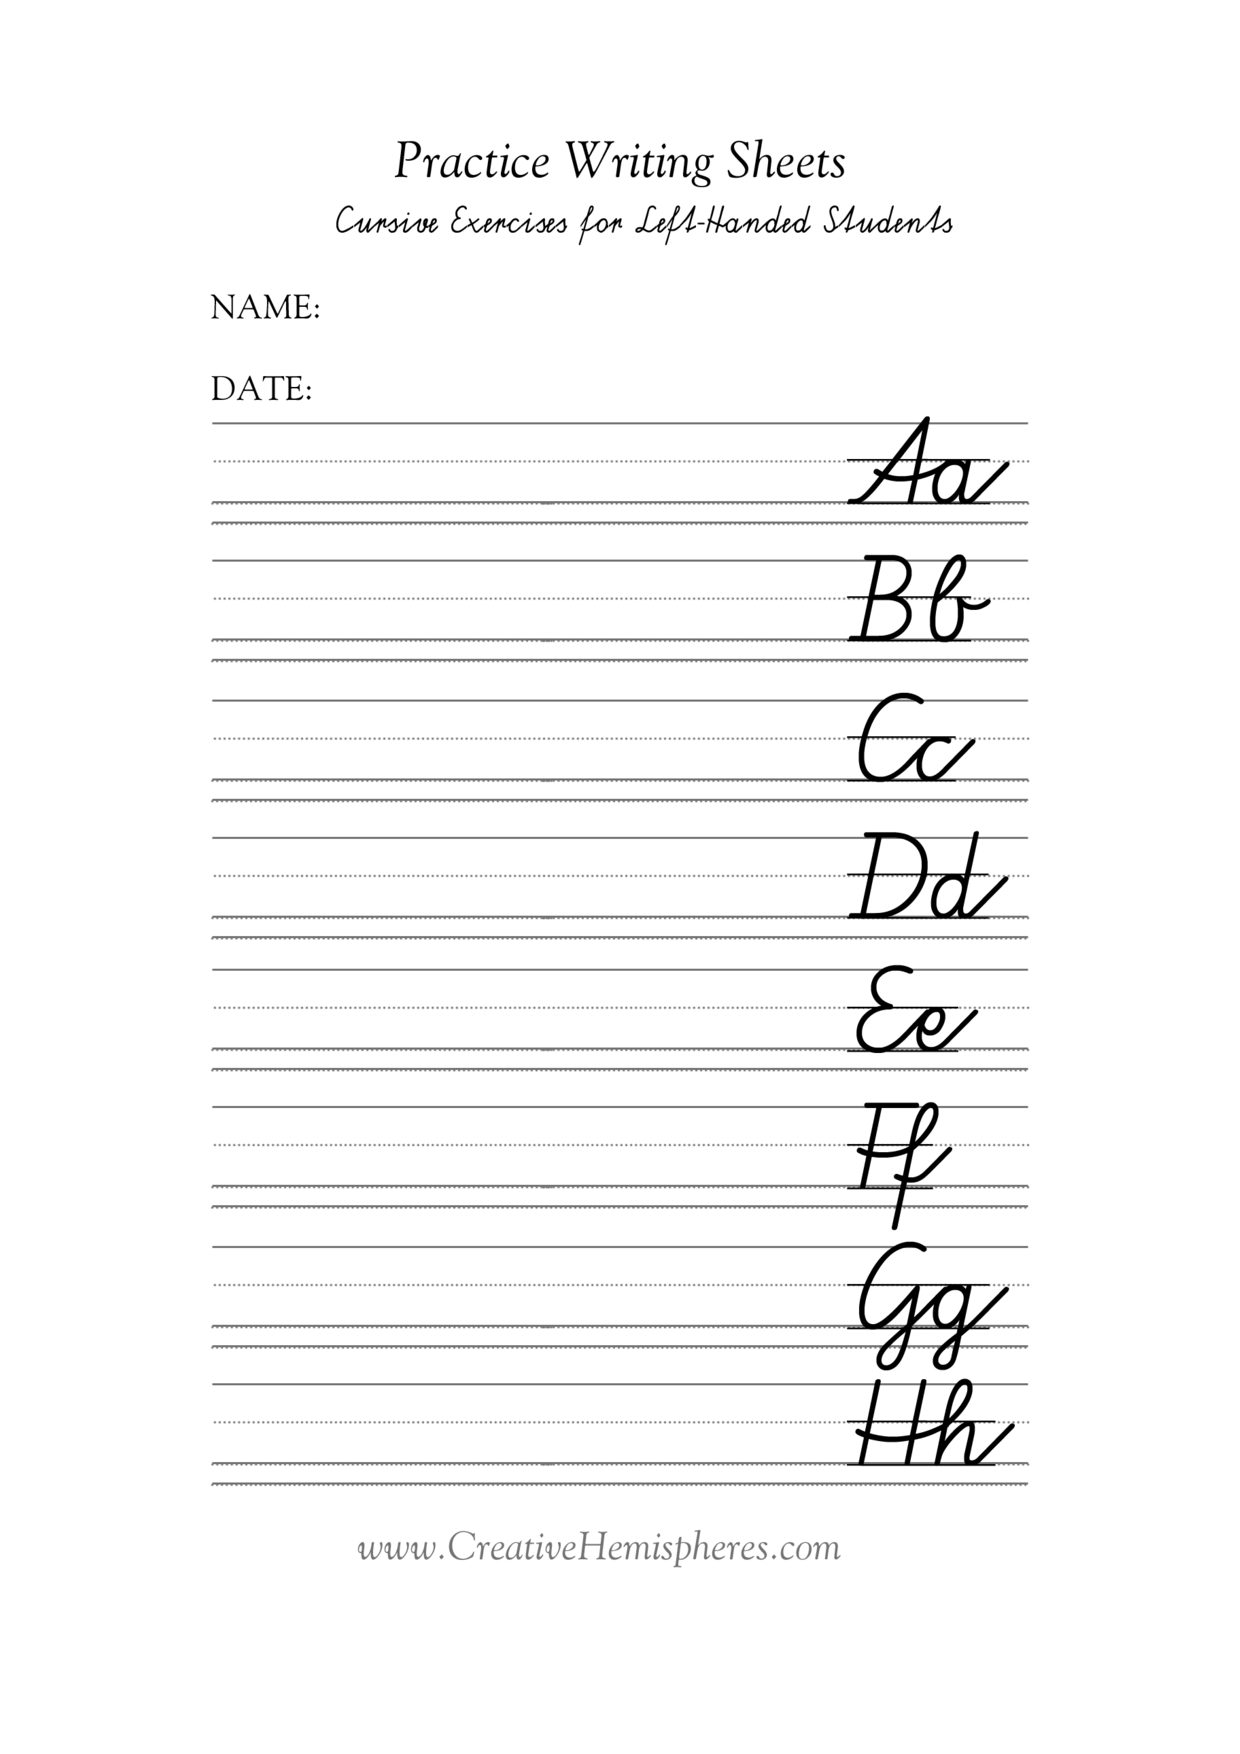 Worksheet Small Alphabets Writing Practice Sheets cursive writing homework sheets number names worksheets small alphabets practice lowercase writing